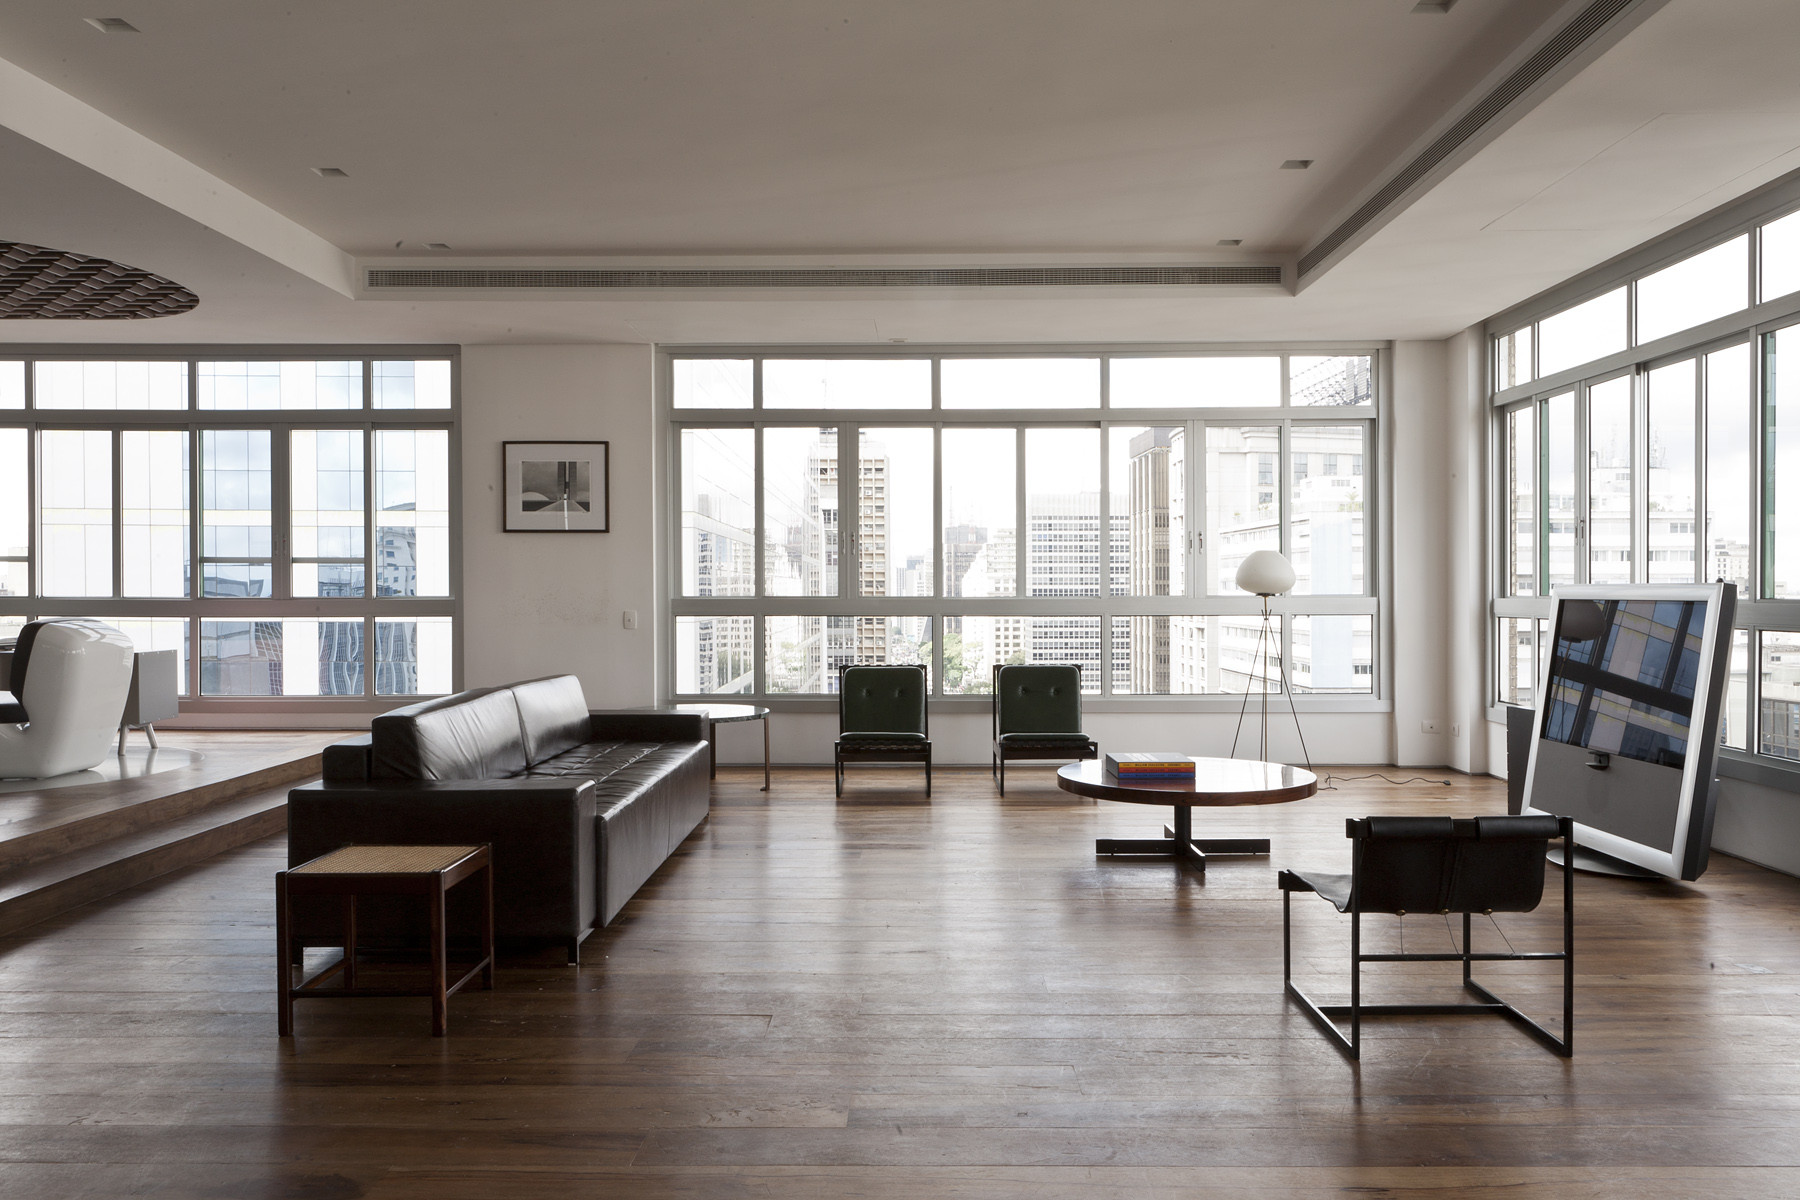 Amazing Wagner Living Collection Of Paulista Apartment,© Roberto